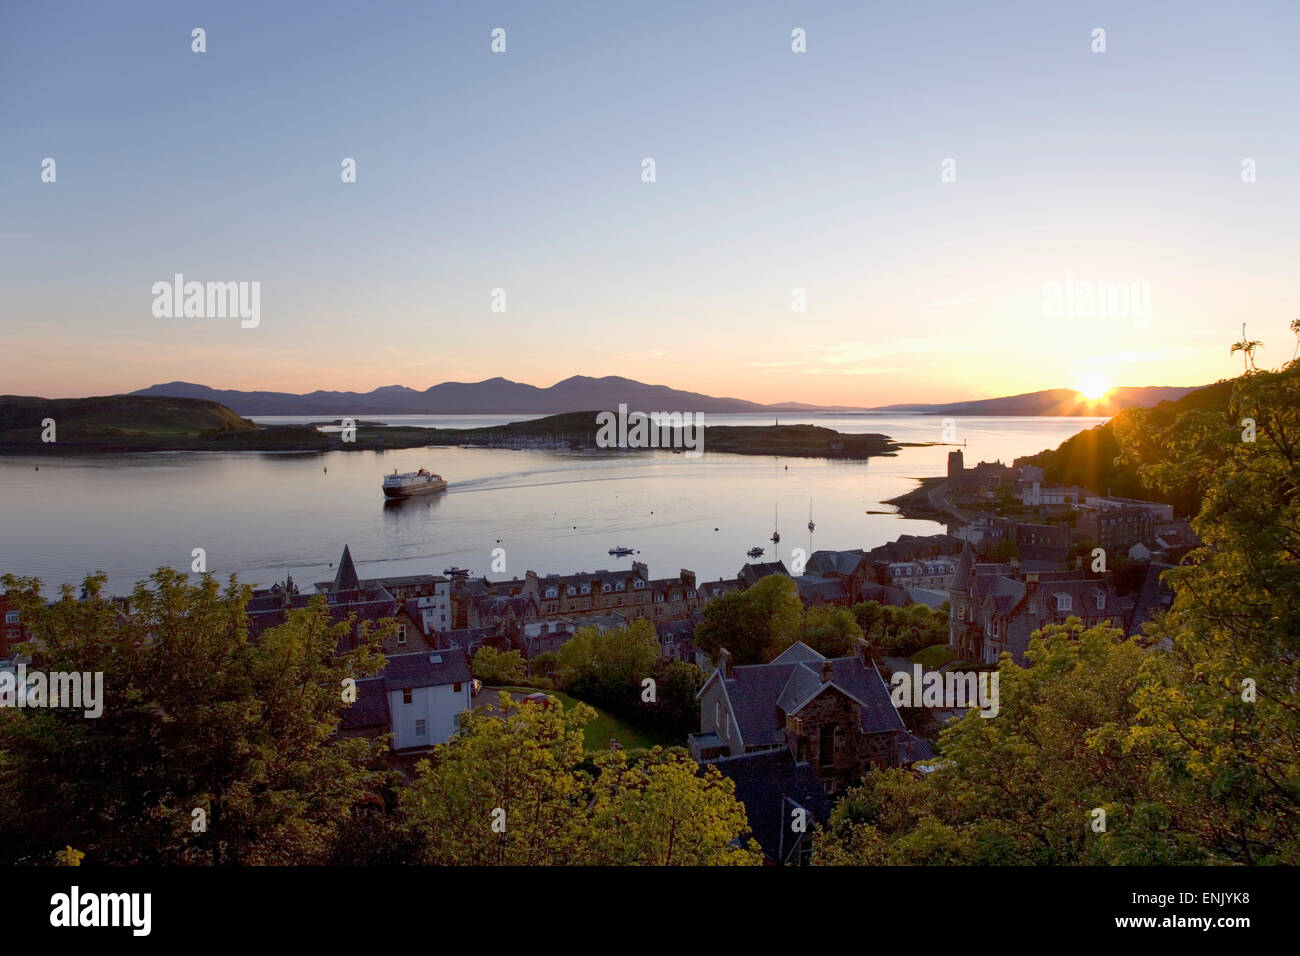 View over Oban Bay from McCaig's Tower, sunset, ferry coming into port, Oban, Argyll and Bute, Scotland, United Stock Photo